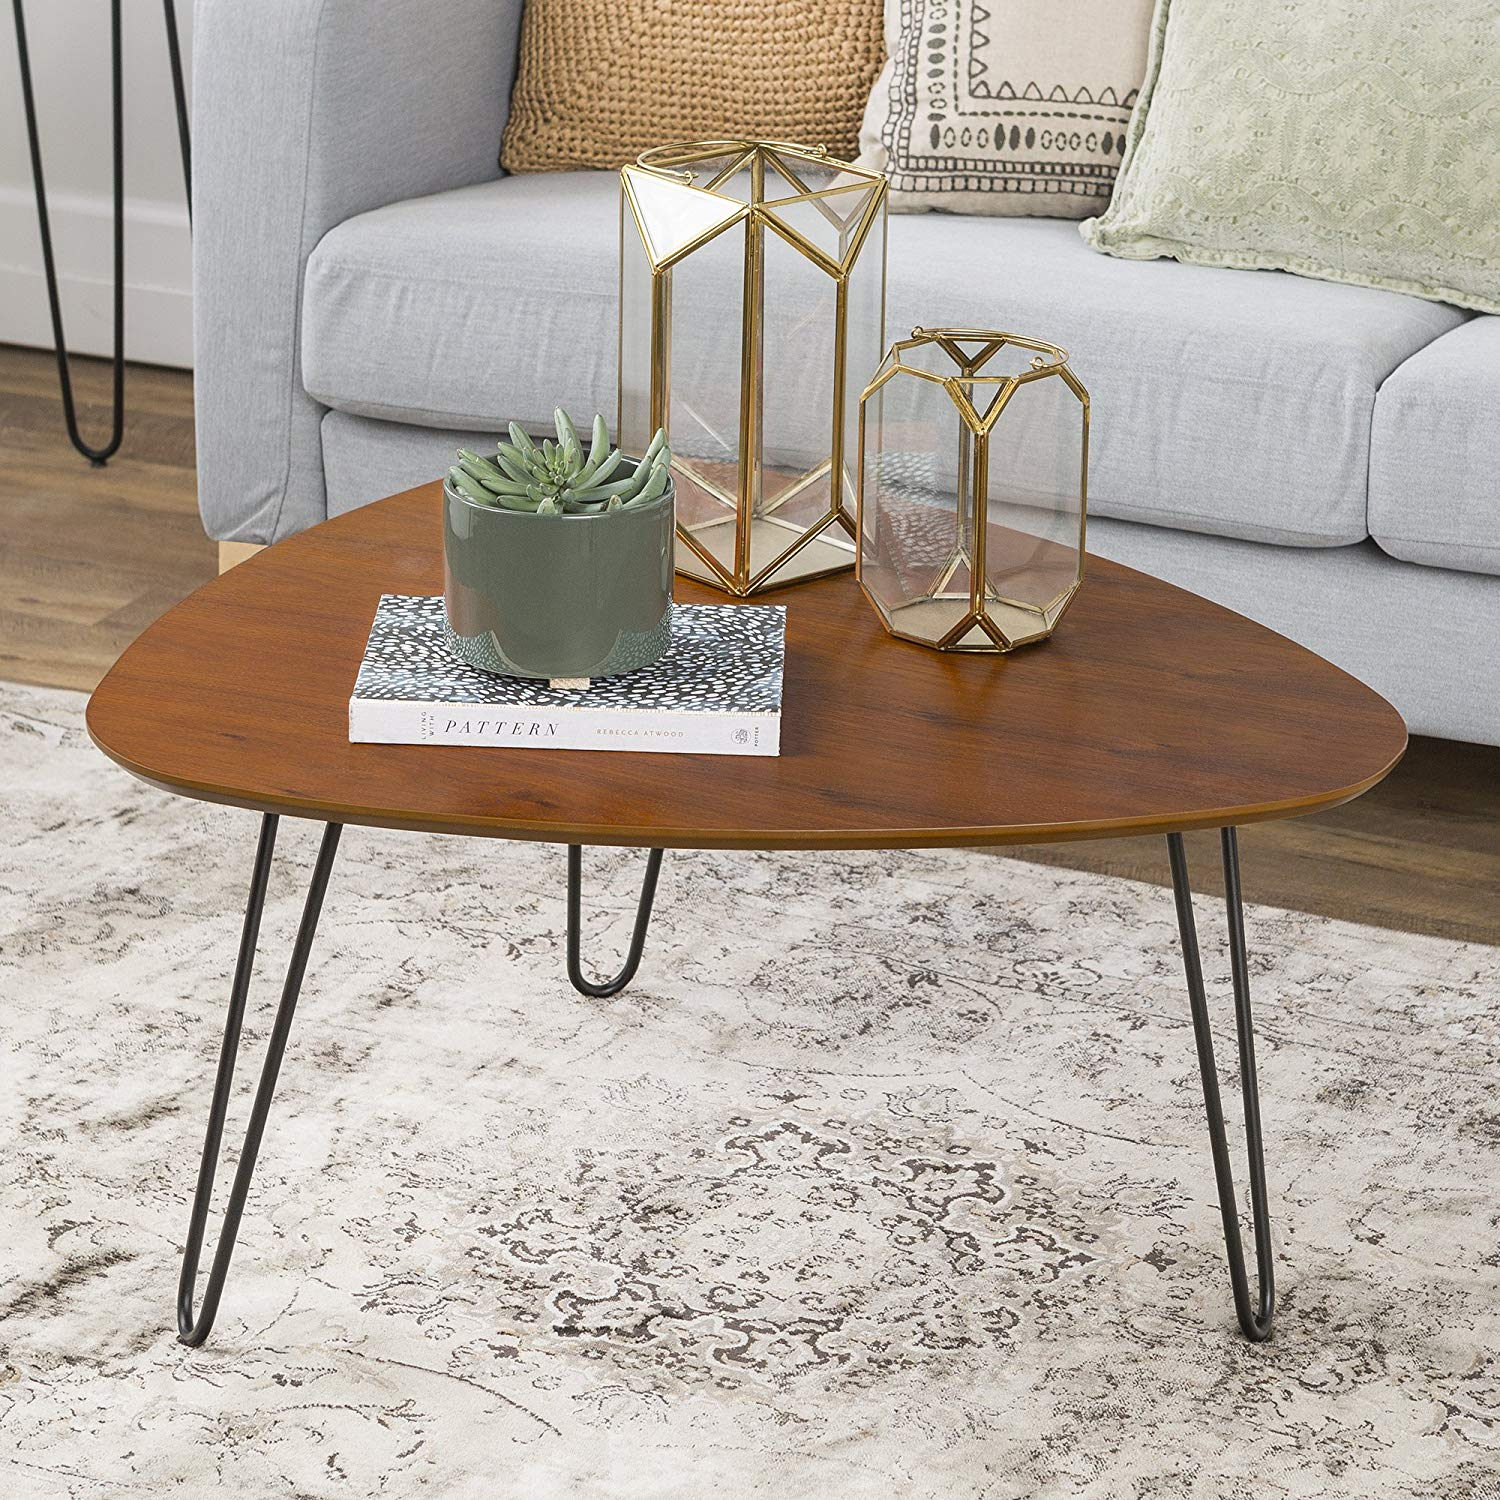 furniture hairpin leg wood coffee table walnut azf room essentials accent kitchen dining small ideas tablecloth for square house interior rosette porch side with lamp attached